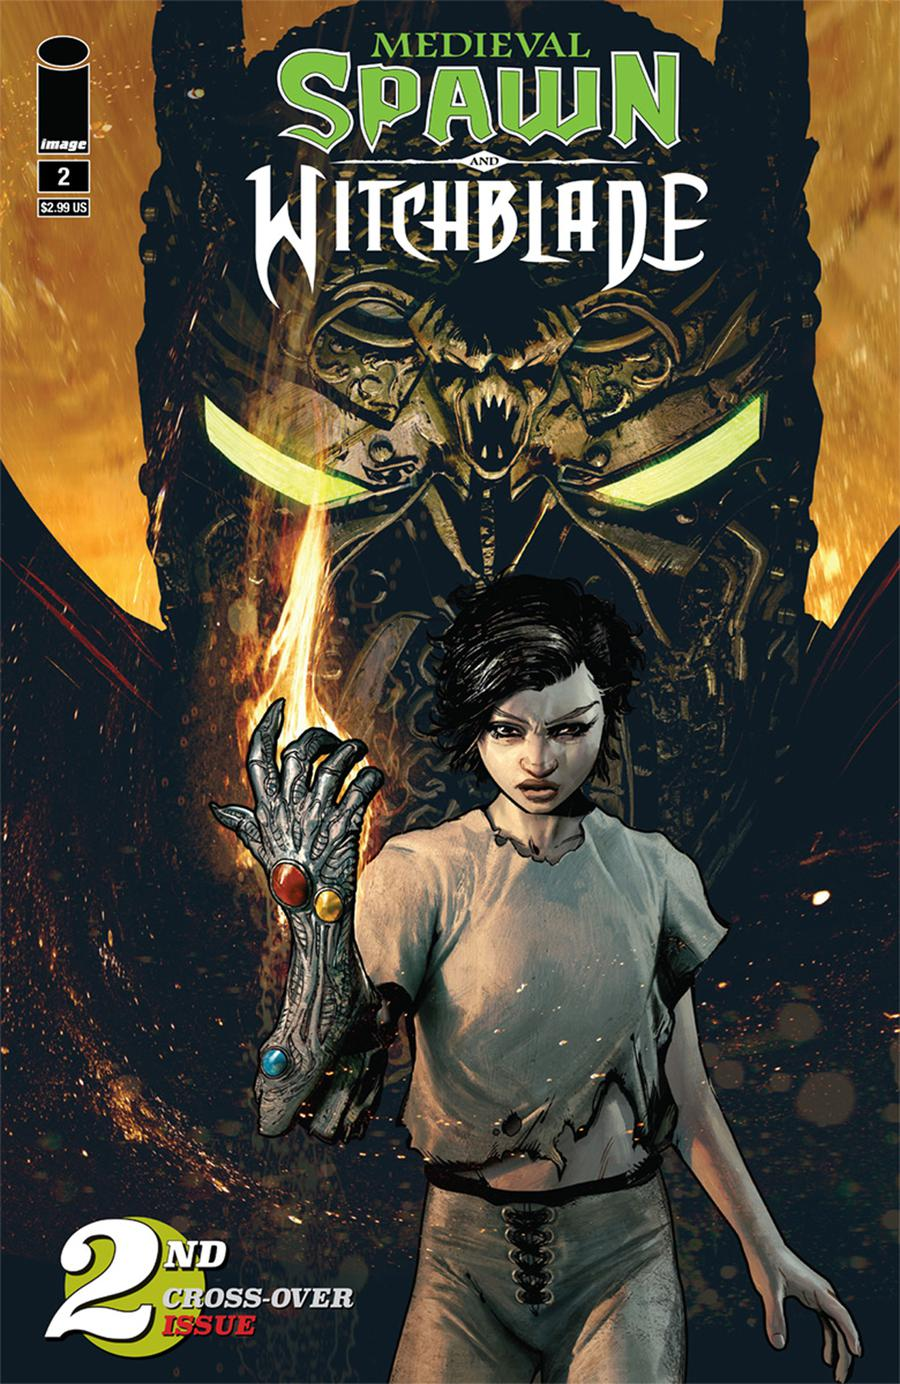 Medieval Spawn Witchblade Vol 2 #2 Cover A Regular Brian Haberlin Cover